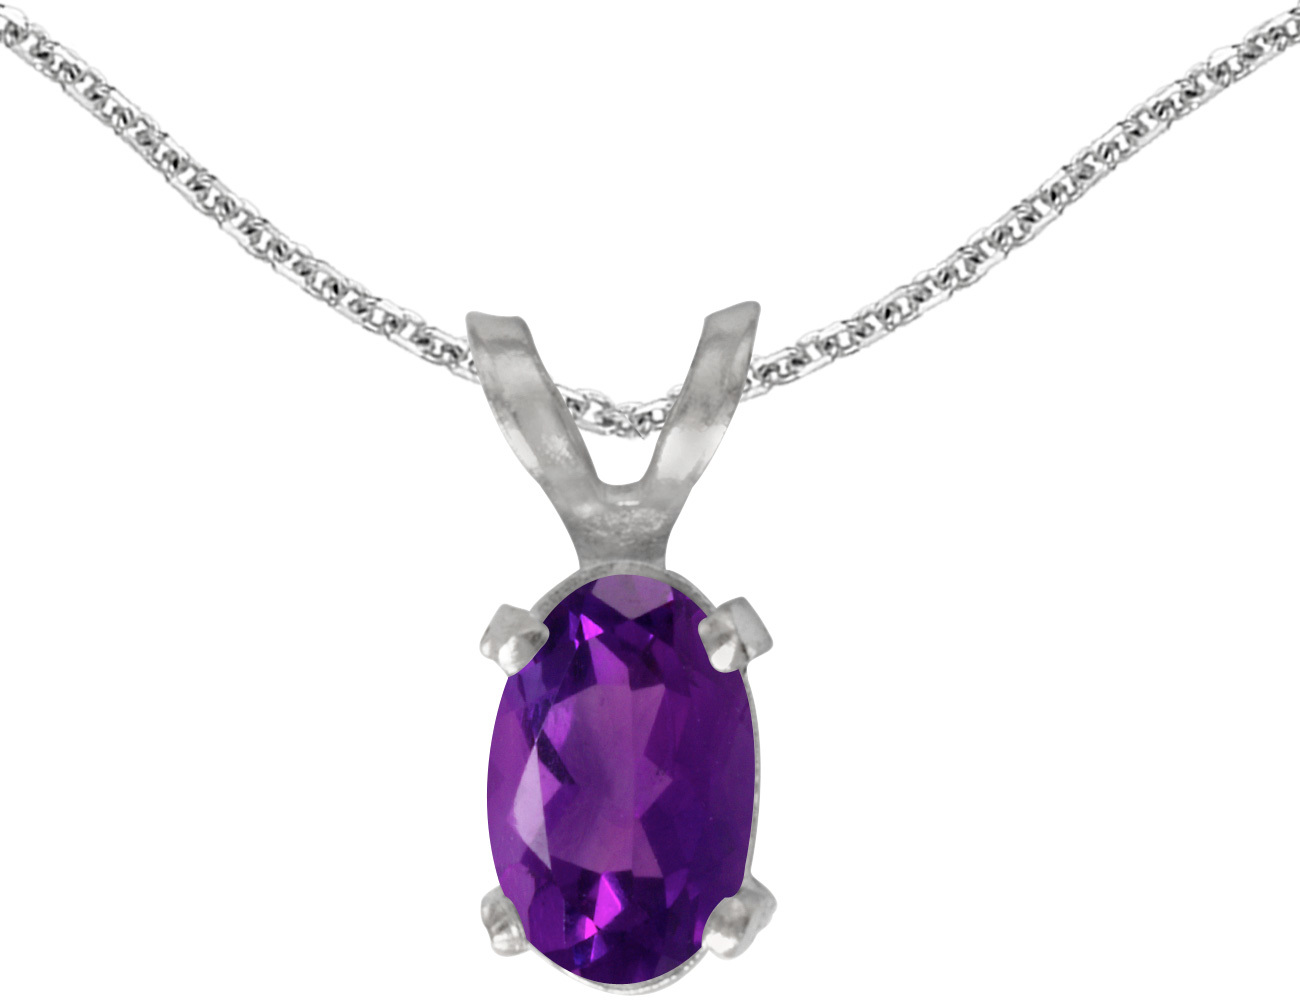 14k White Gold Oval Amethyst Pendant (Chain NOT included)